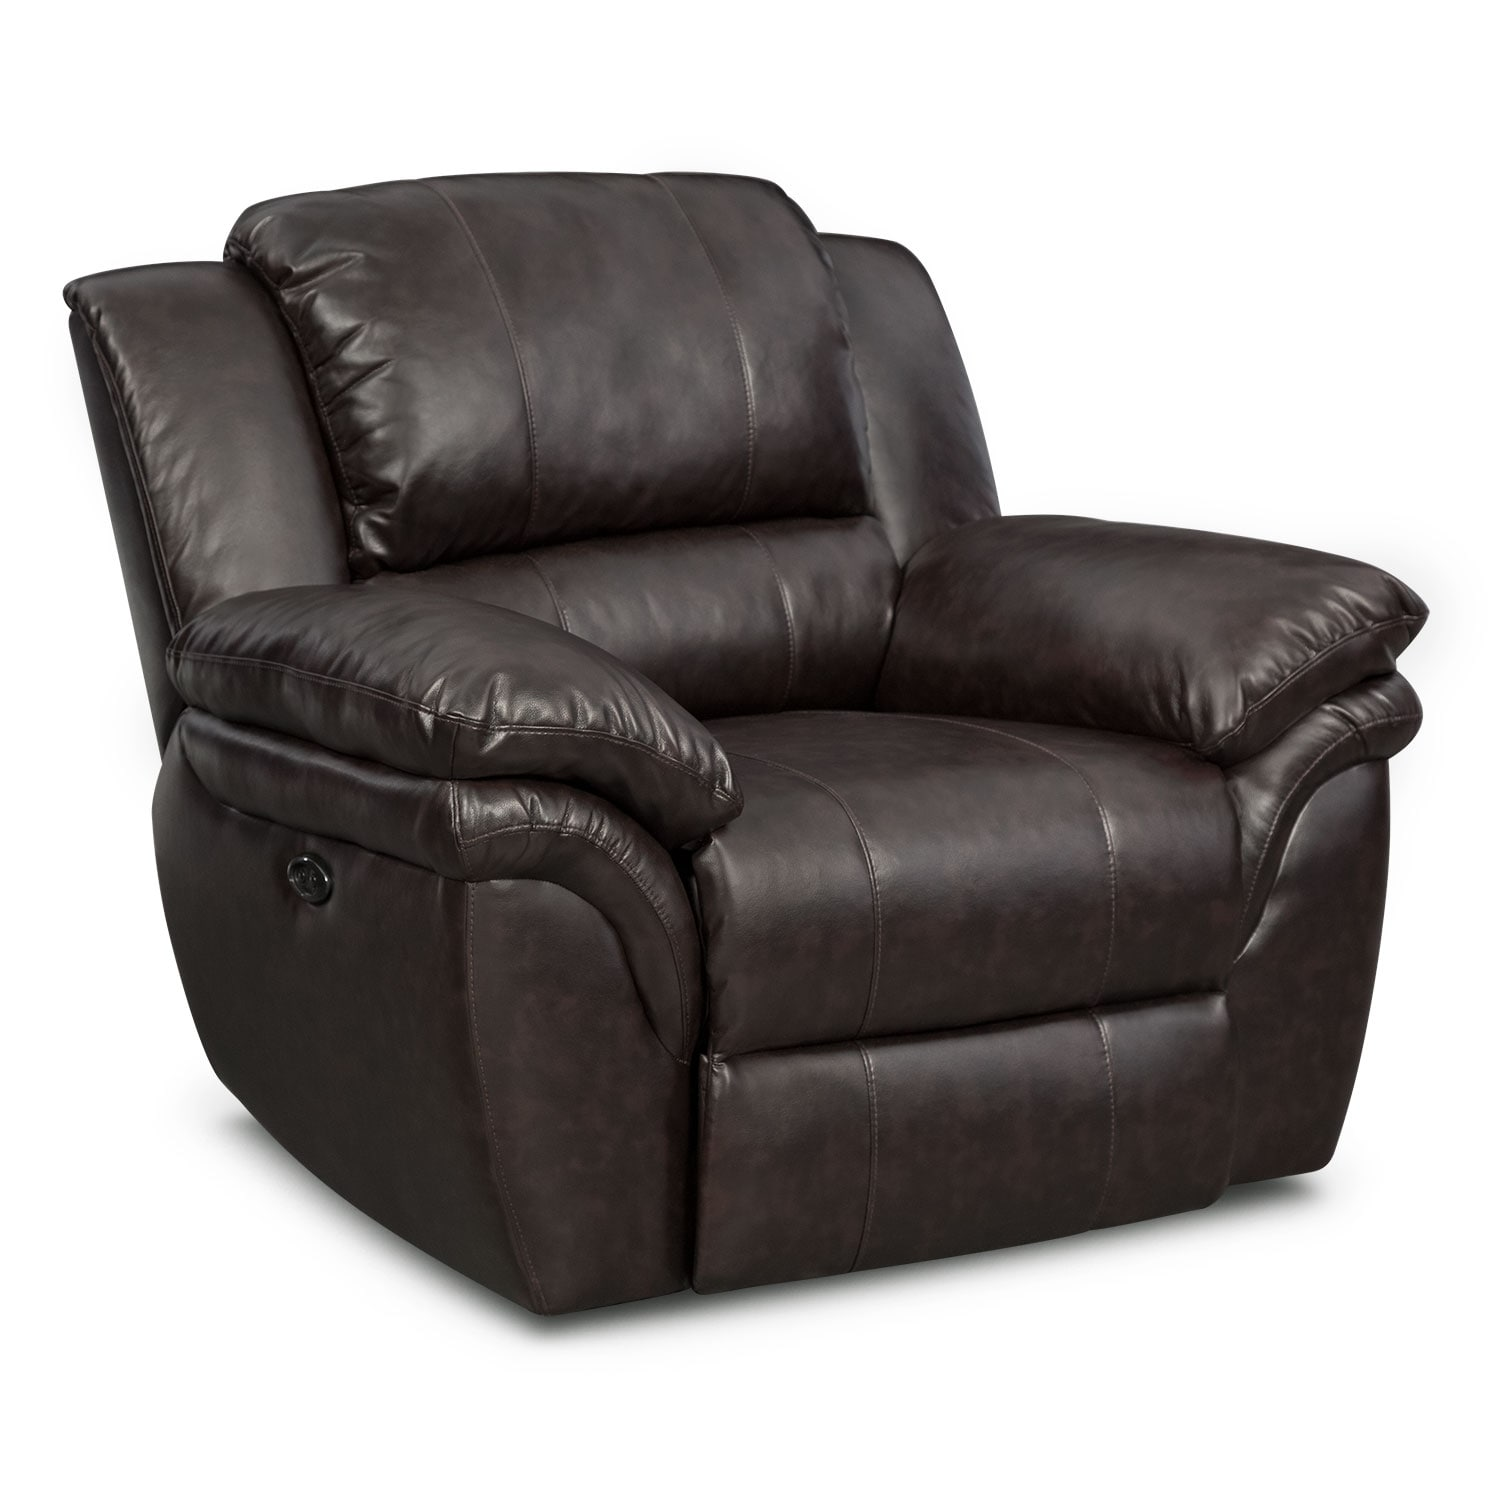 Aldo power reclining sofa loveseat and recliner set brown american signature furniture Power loveseat recliner